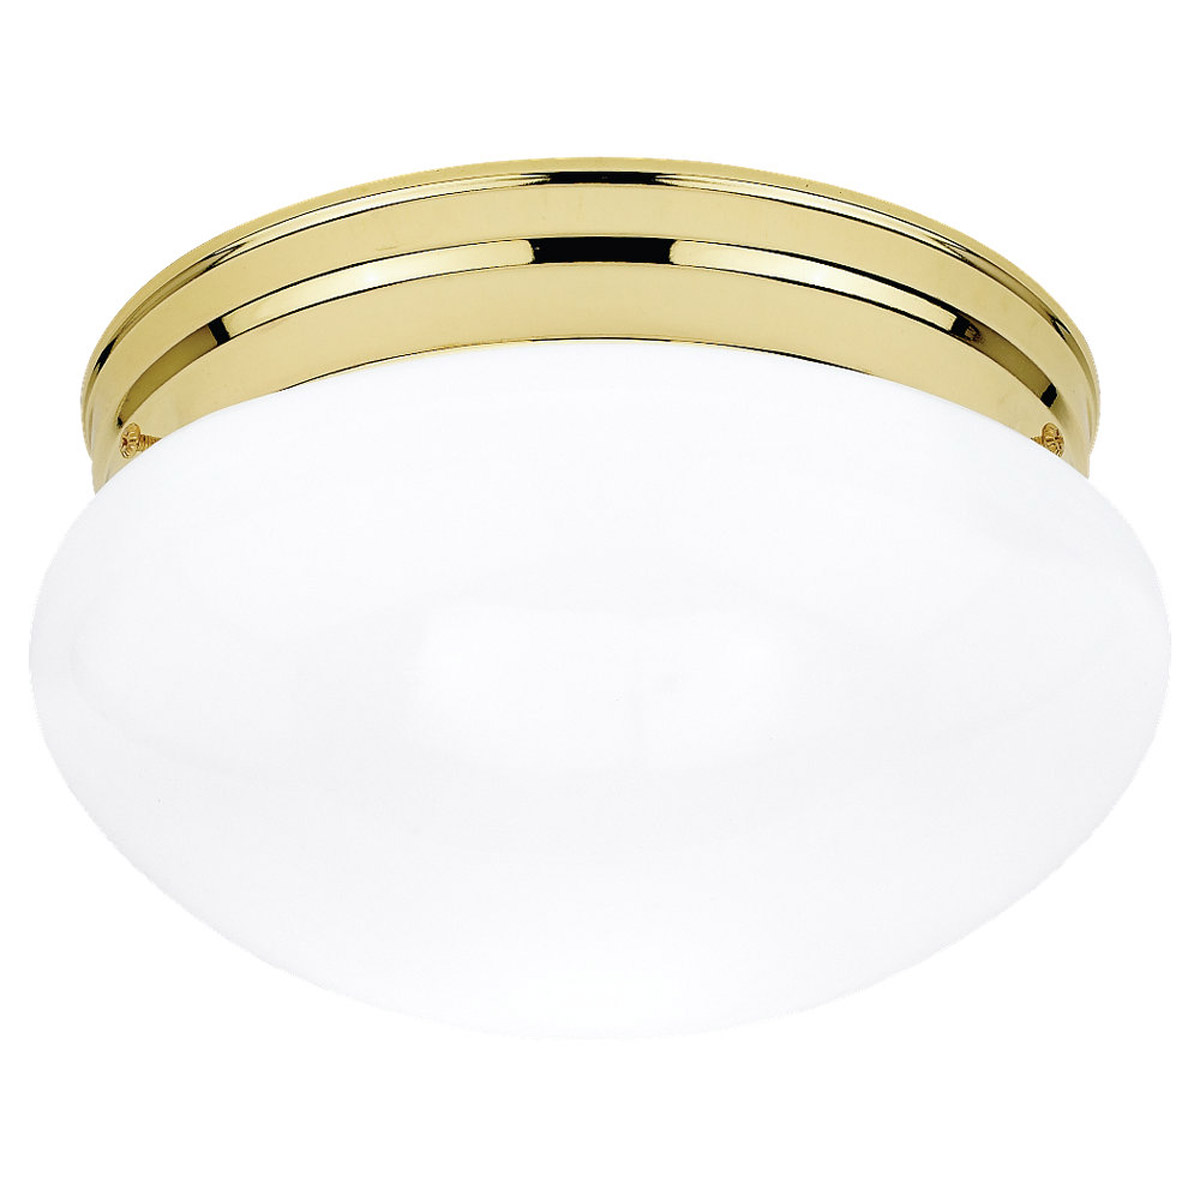 Sea Gull Lighting Webster 2 Light Flush Mount in Polished Brass 5328-02 photo